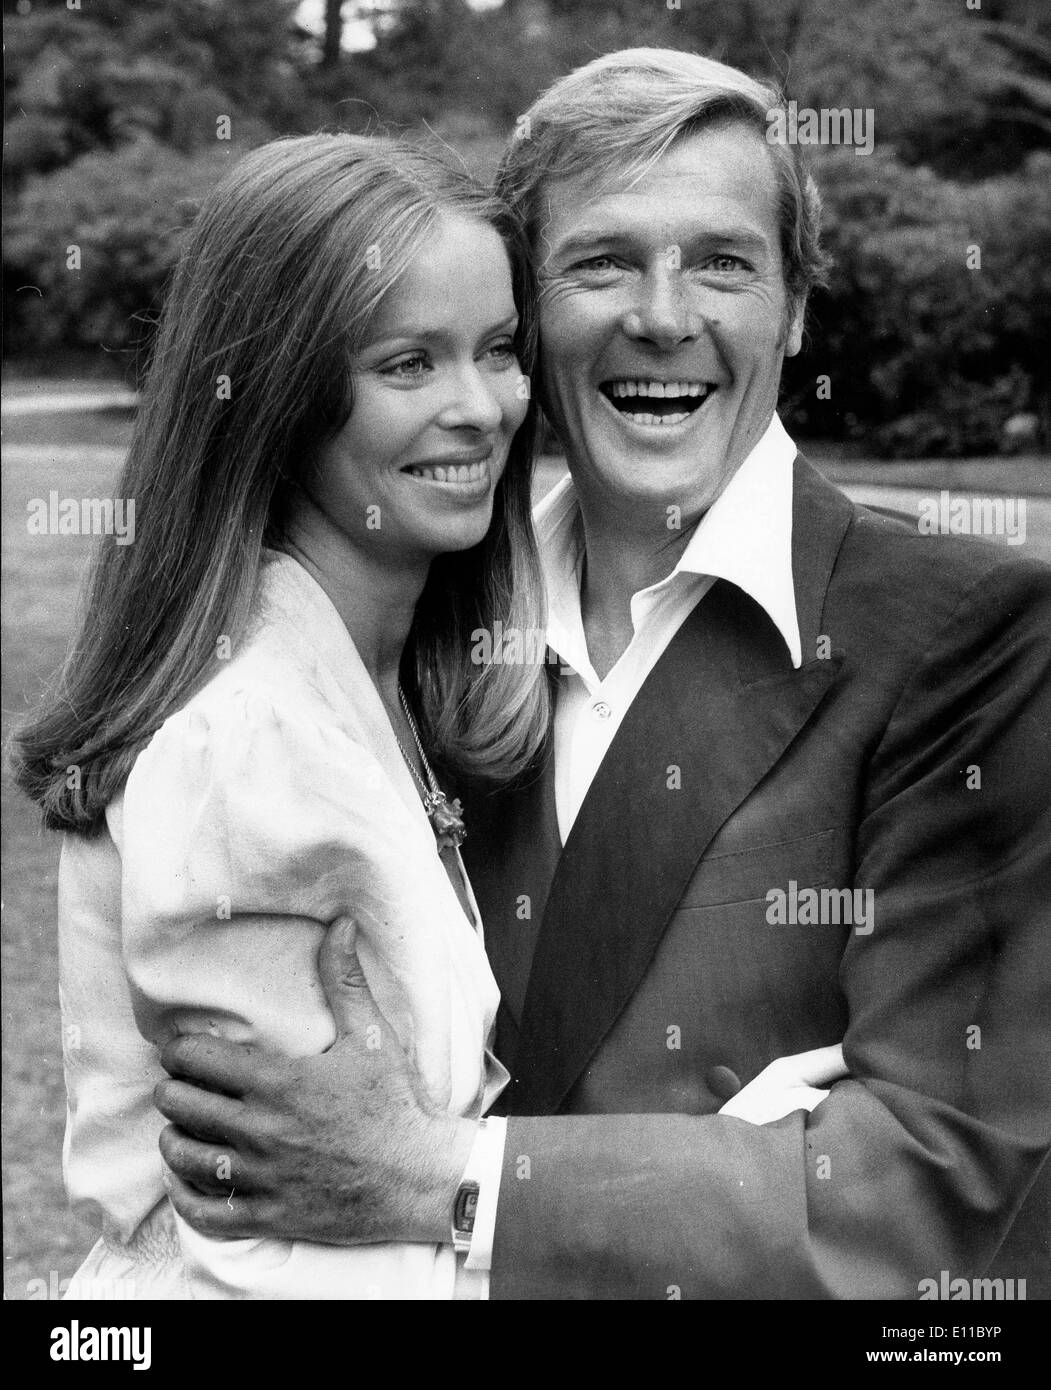 Sep 02, 1976; London, England, UK; Actor ROGER MOORE and BARBARA BACH co-stars in the film 'The Spy who Loved me'. - Stock Image